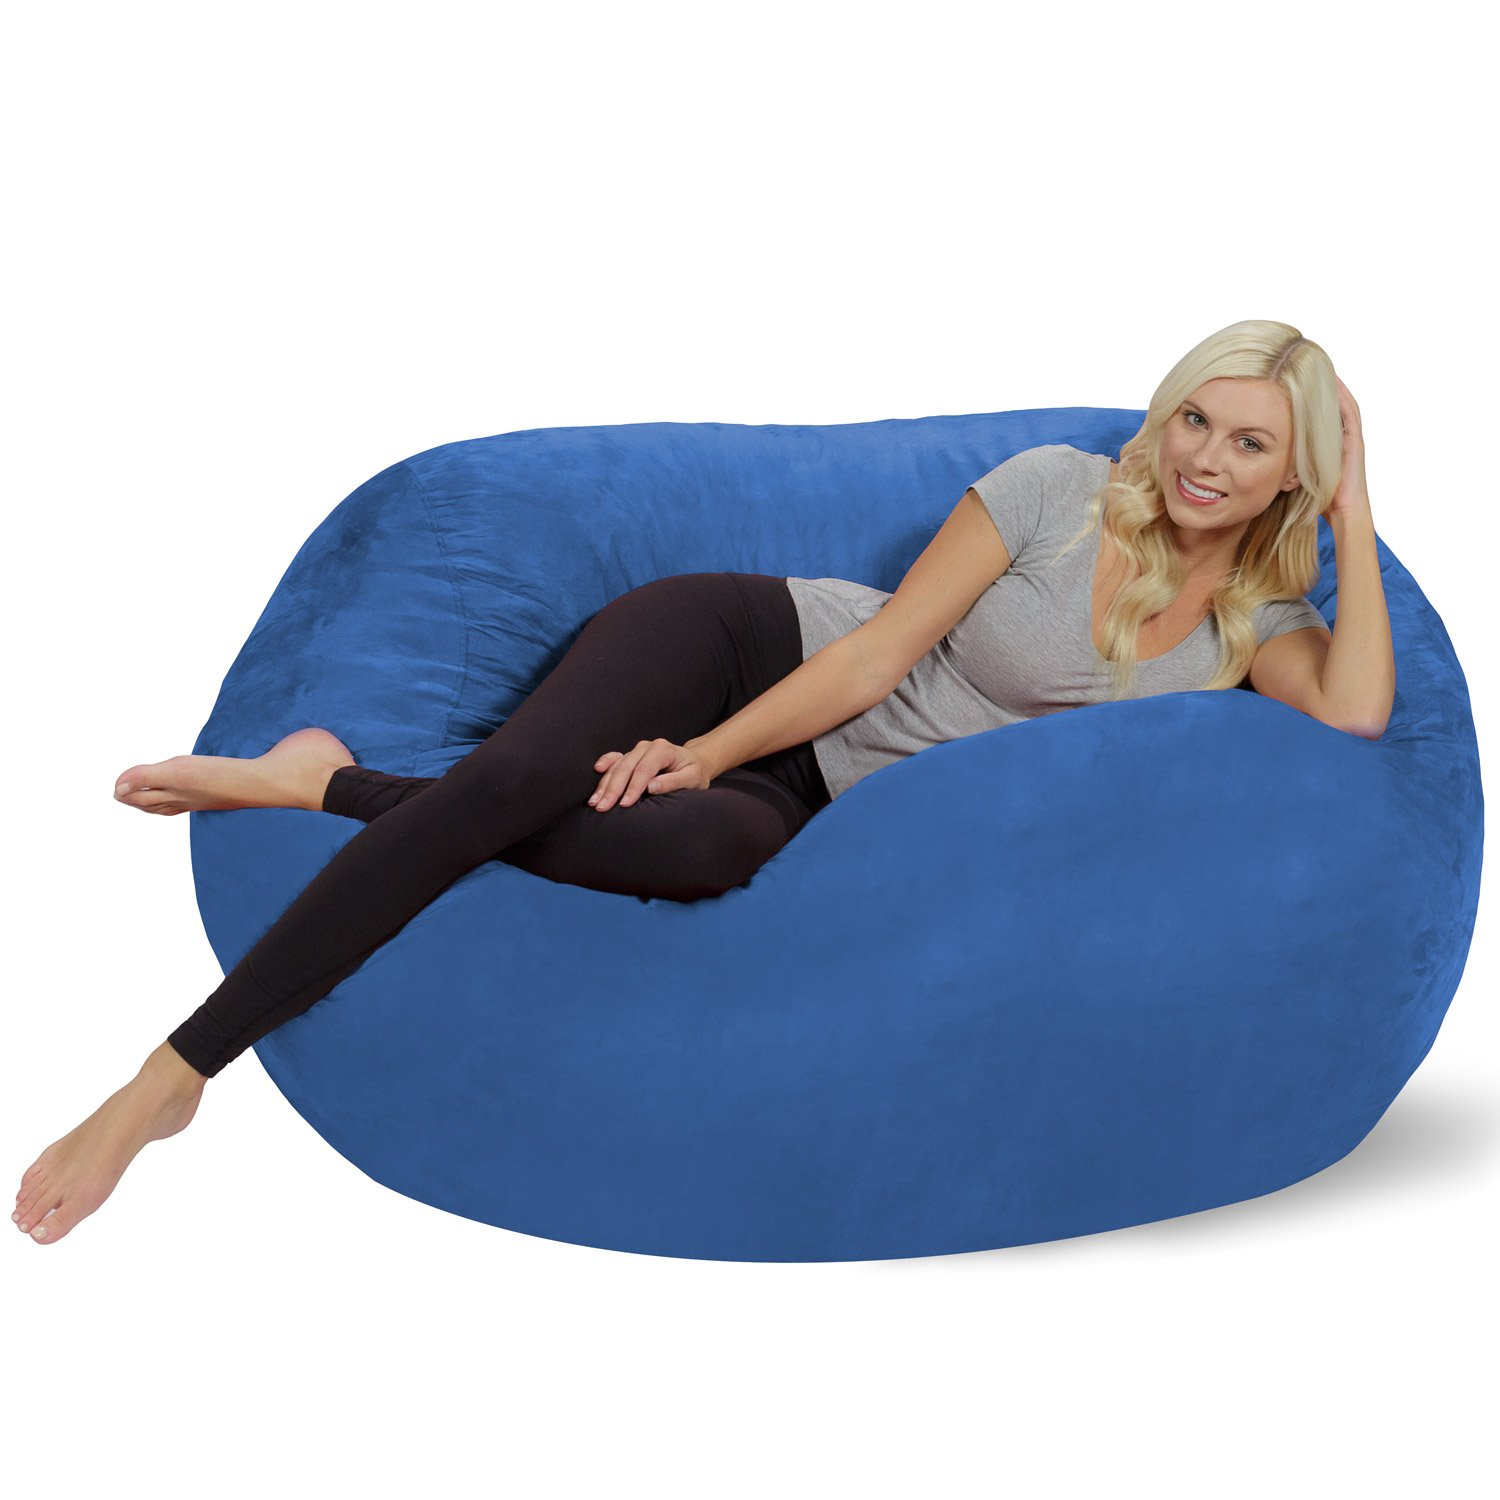 Cozy Sack Replacement Cover for 8 Foot Bean Bag Chair 48 Inch Diameter Durable Double Stitch Construction Machine Wash